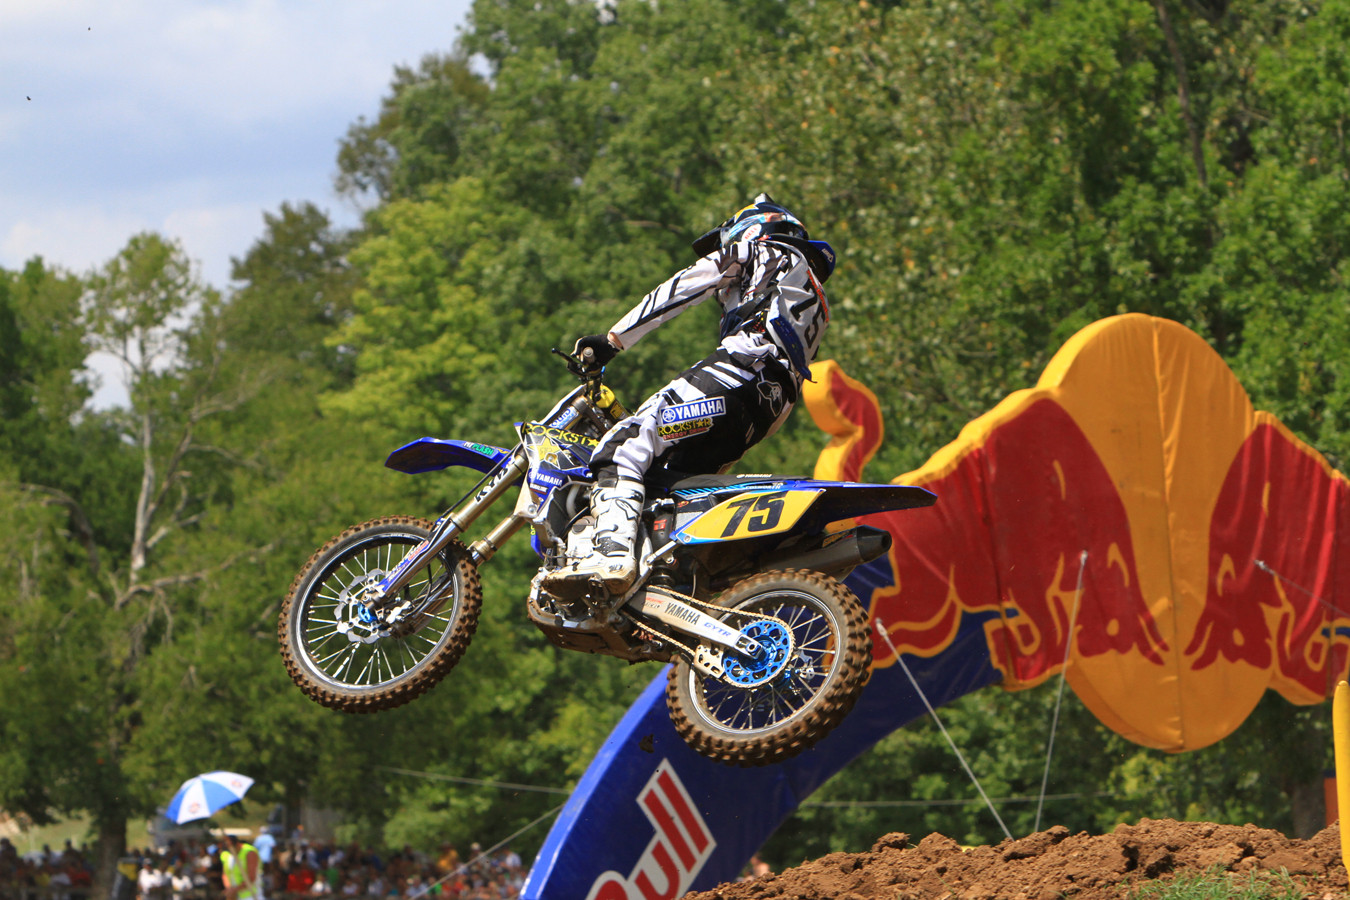 Cooper Webb - Day 3: 2012 Red Bull AMA Amateur National Motocross Championships - Motocross Pictures - Vital MX